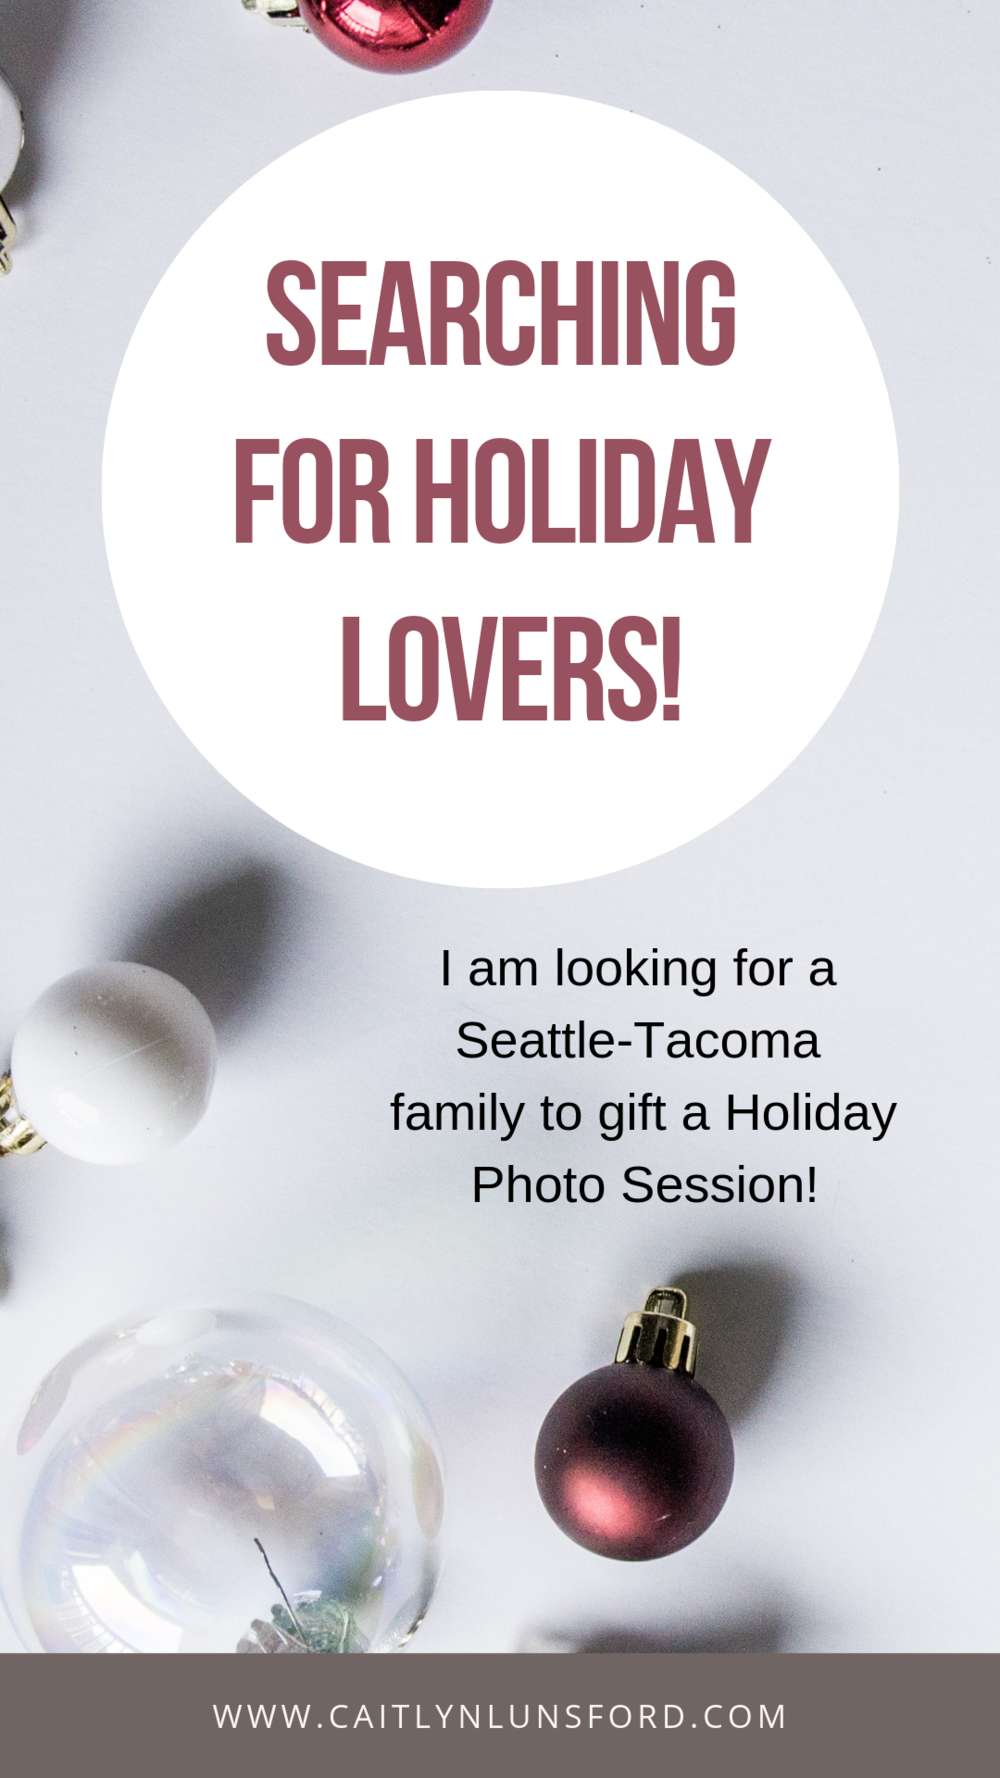 Searching for a family that lives in the Seattle-Tacoma area to gift a portrait session too! Application Deadline - November 9, 2018 - Caitlyn Lunsford Photography